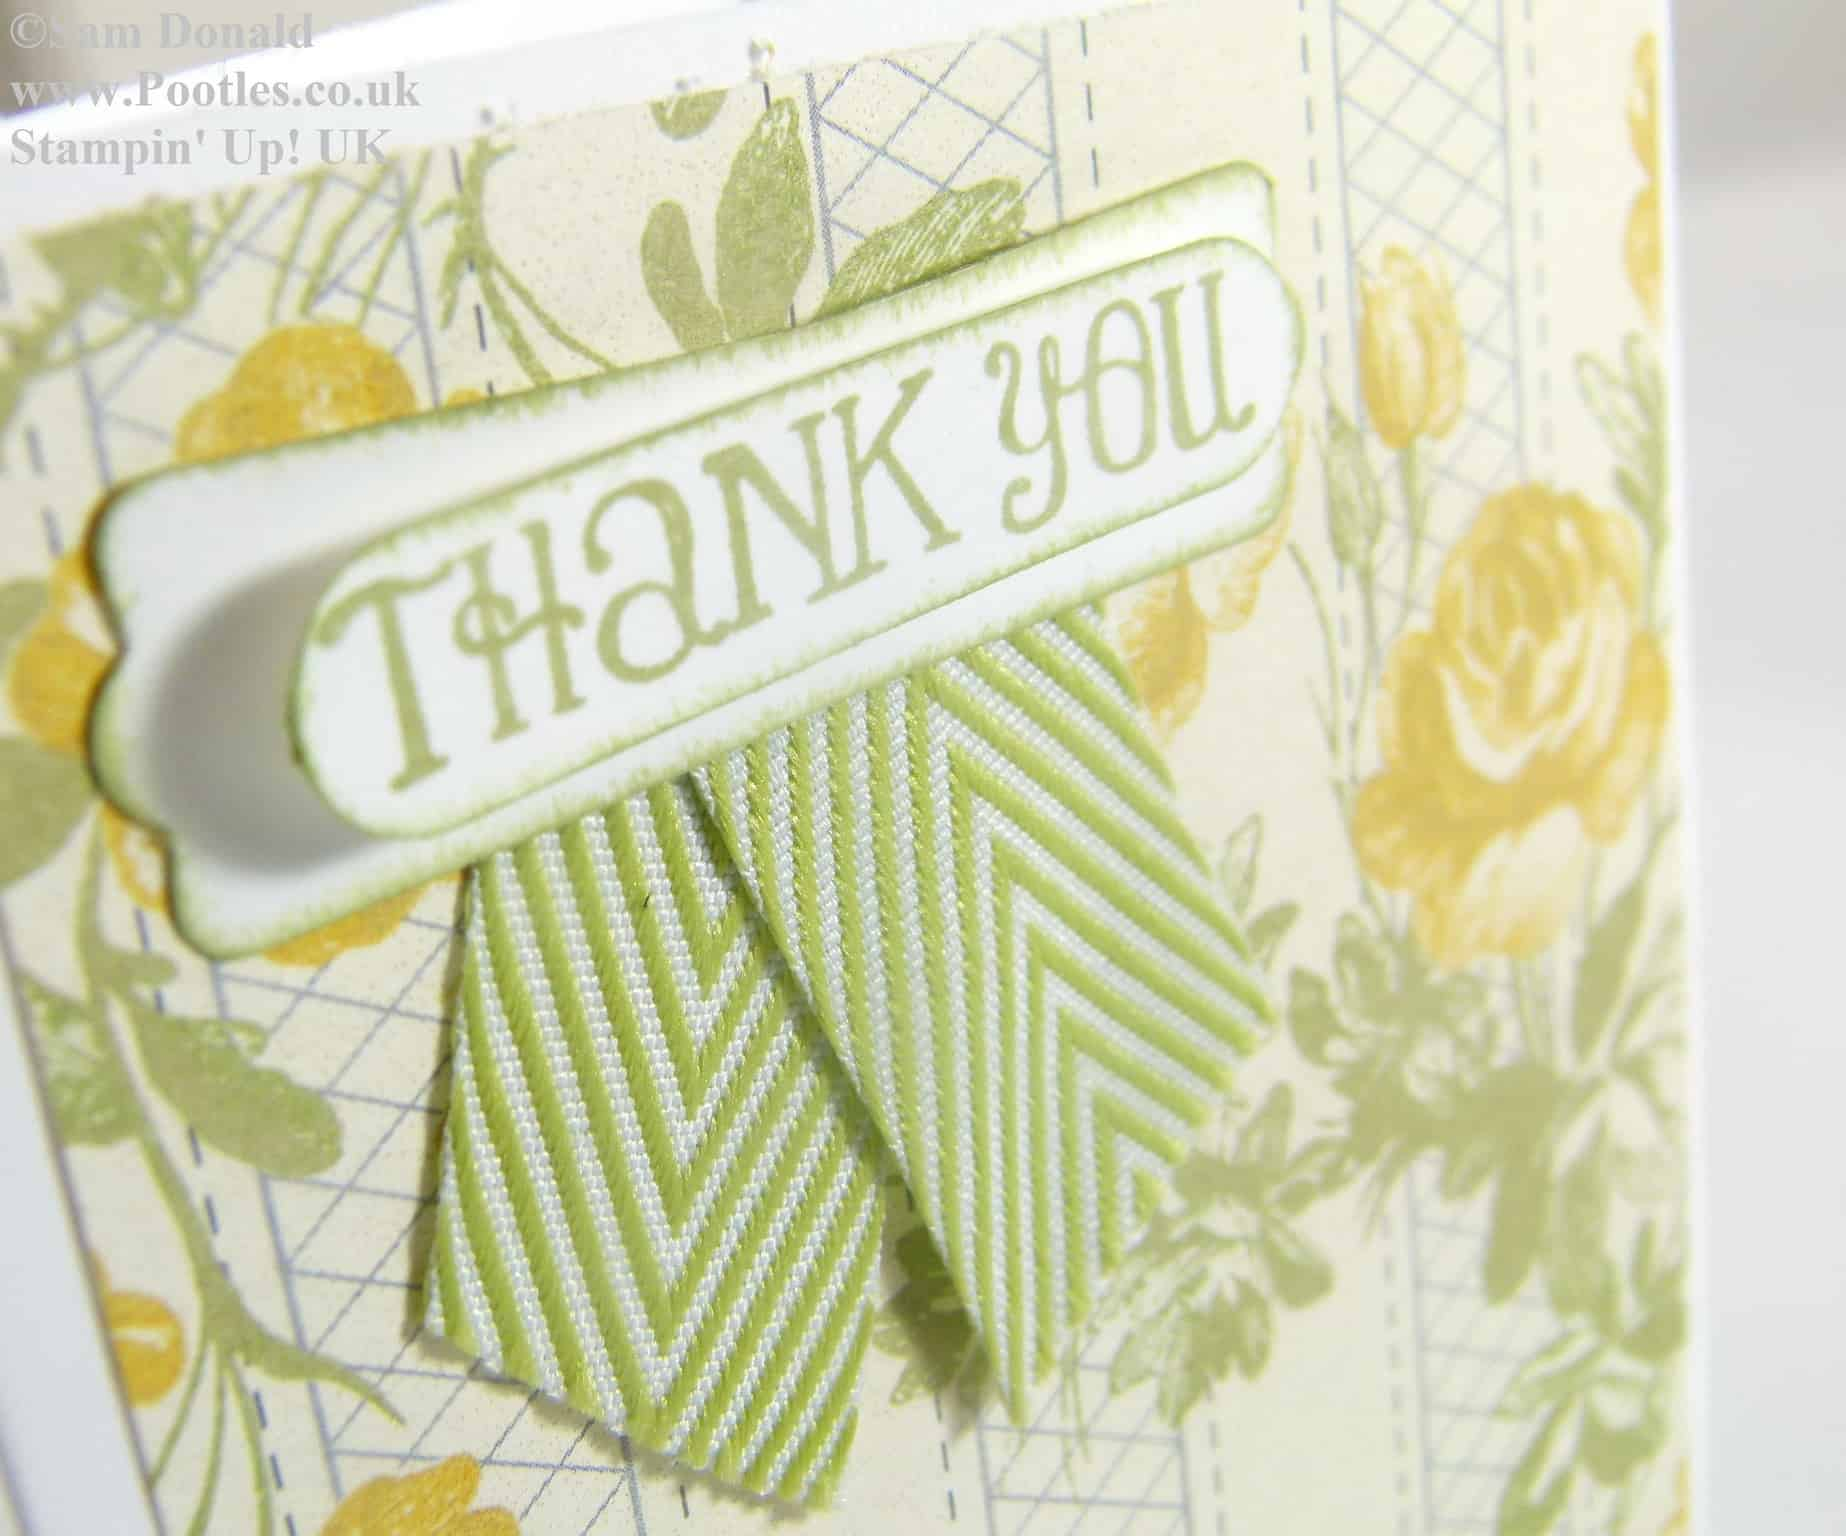 POOTLES Stampin Up UK Afternoon Picnic Thank You